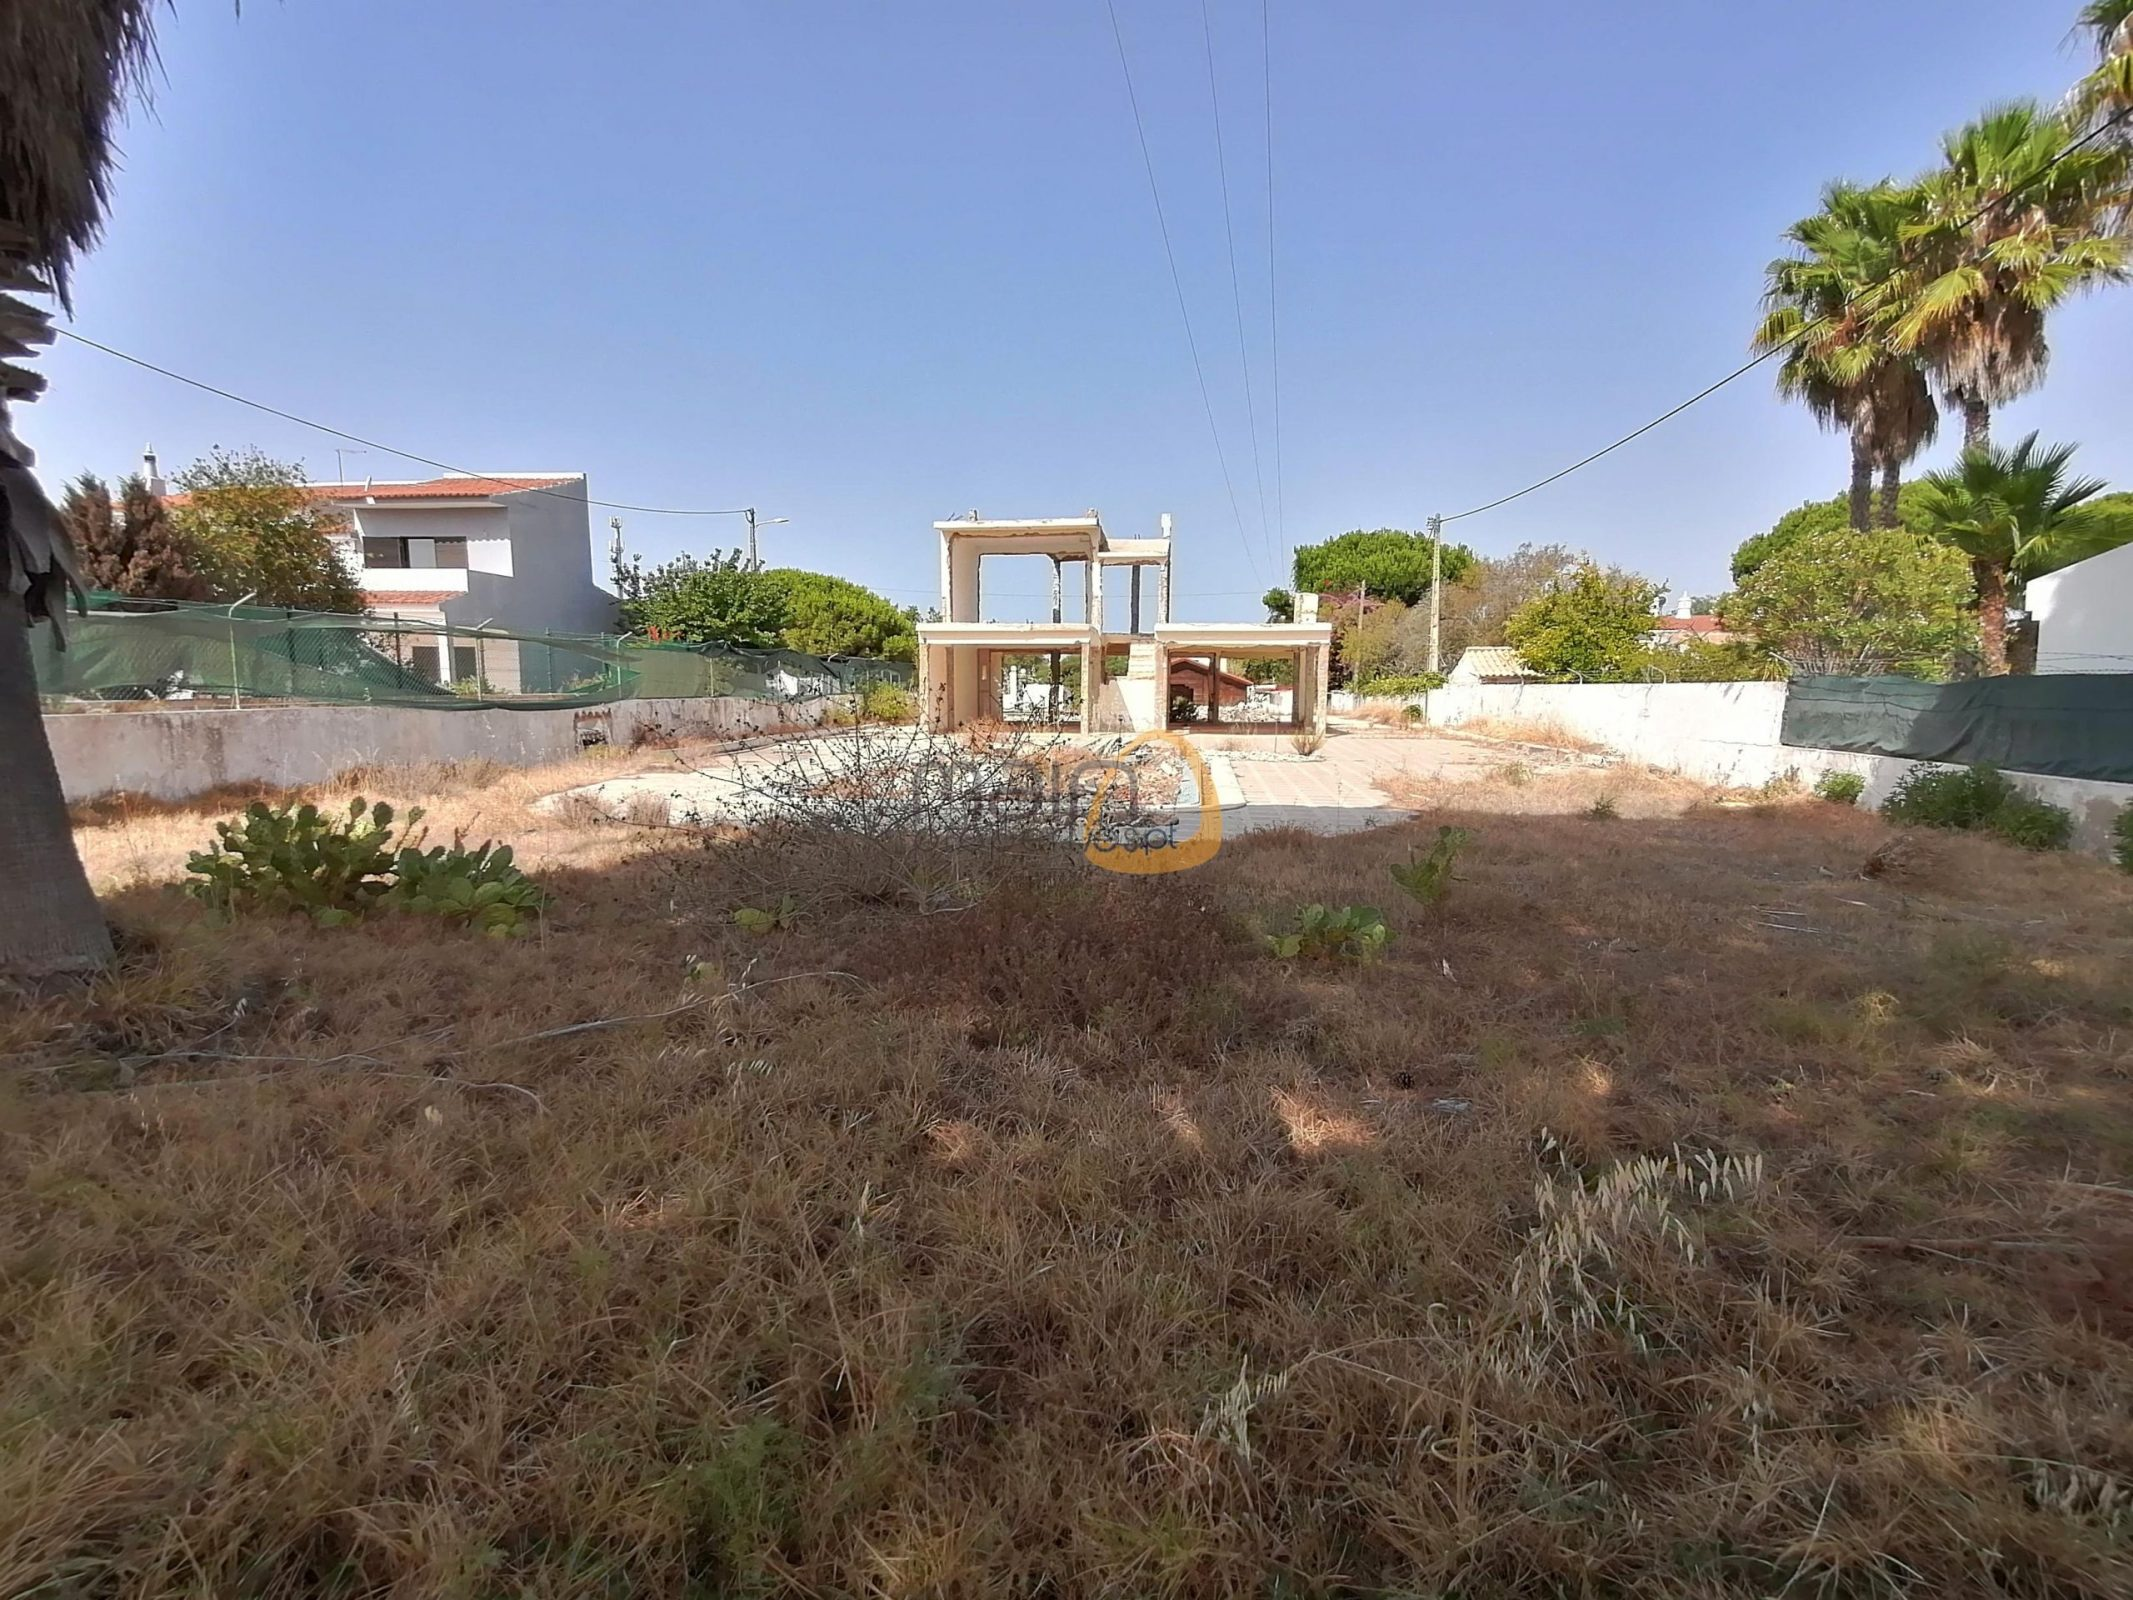 House with project for a 4 bedroom Villa close to Vale do Lobo and Quinta do Lago